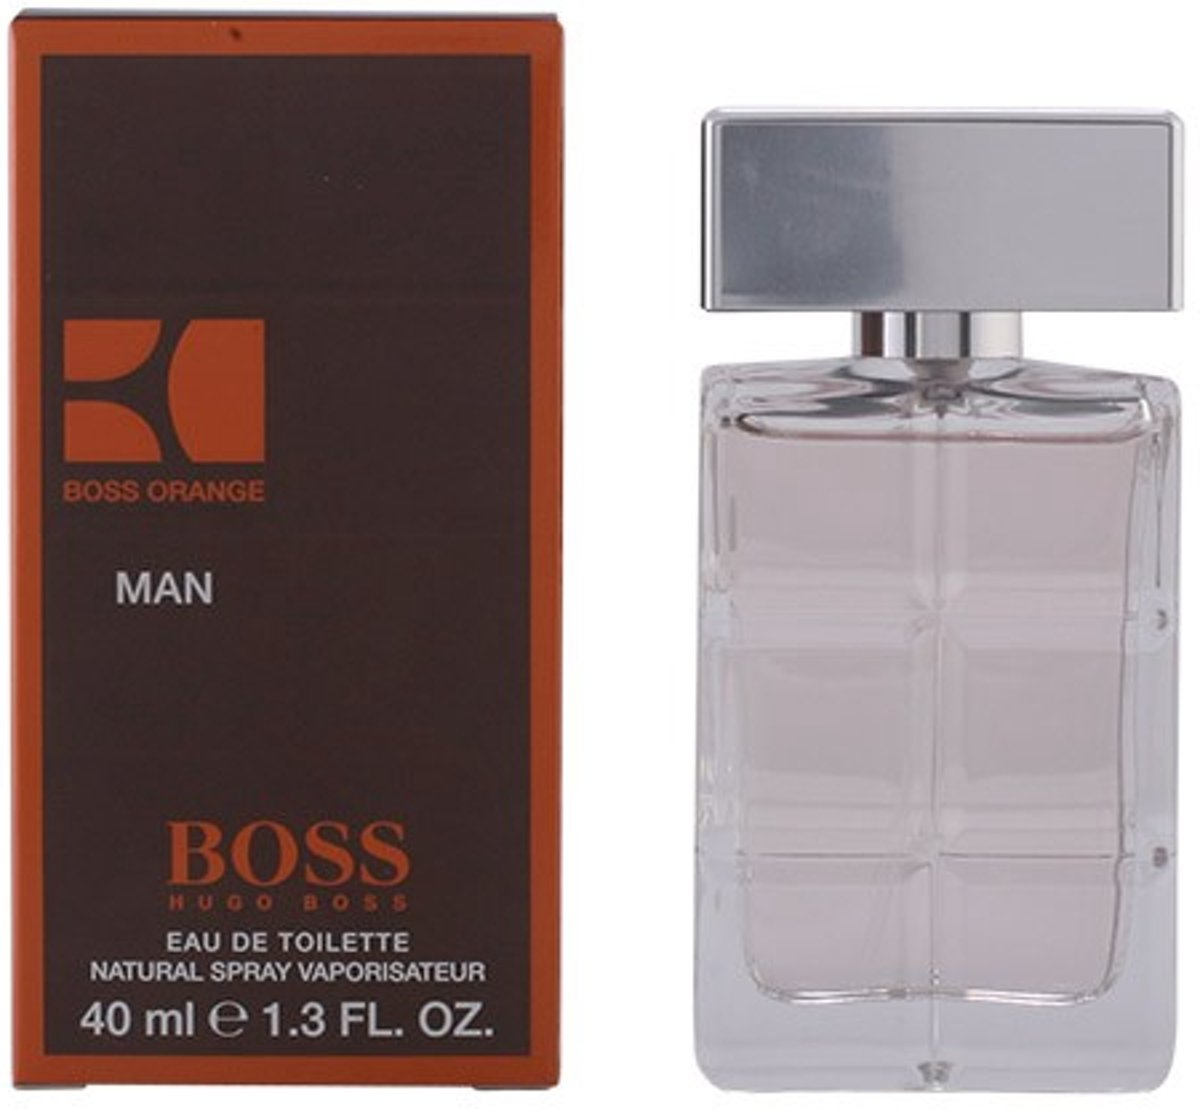 PROMO 2 stuks BOSS ORANGE MAN eau de toilette spray 40 ml